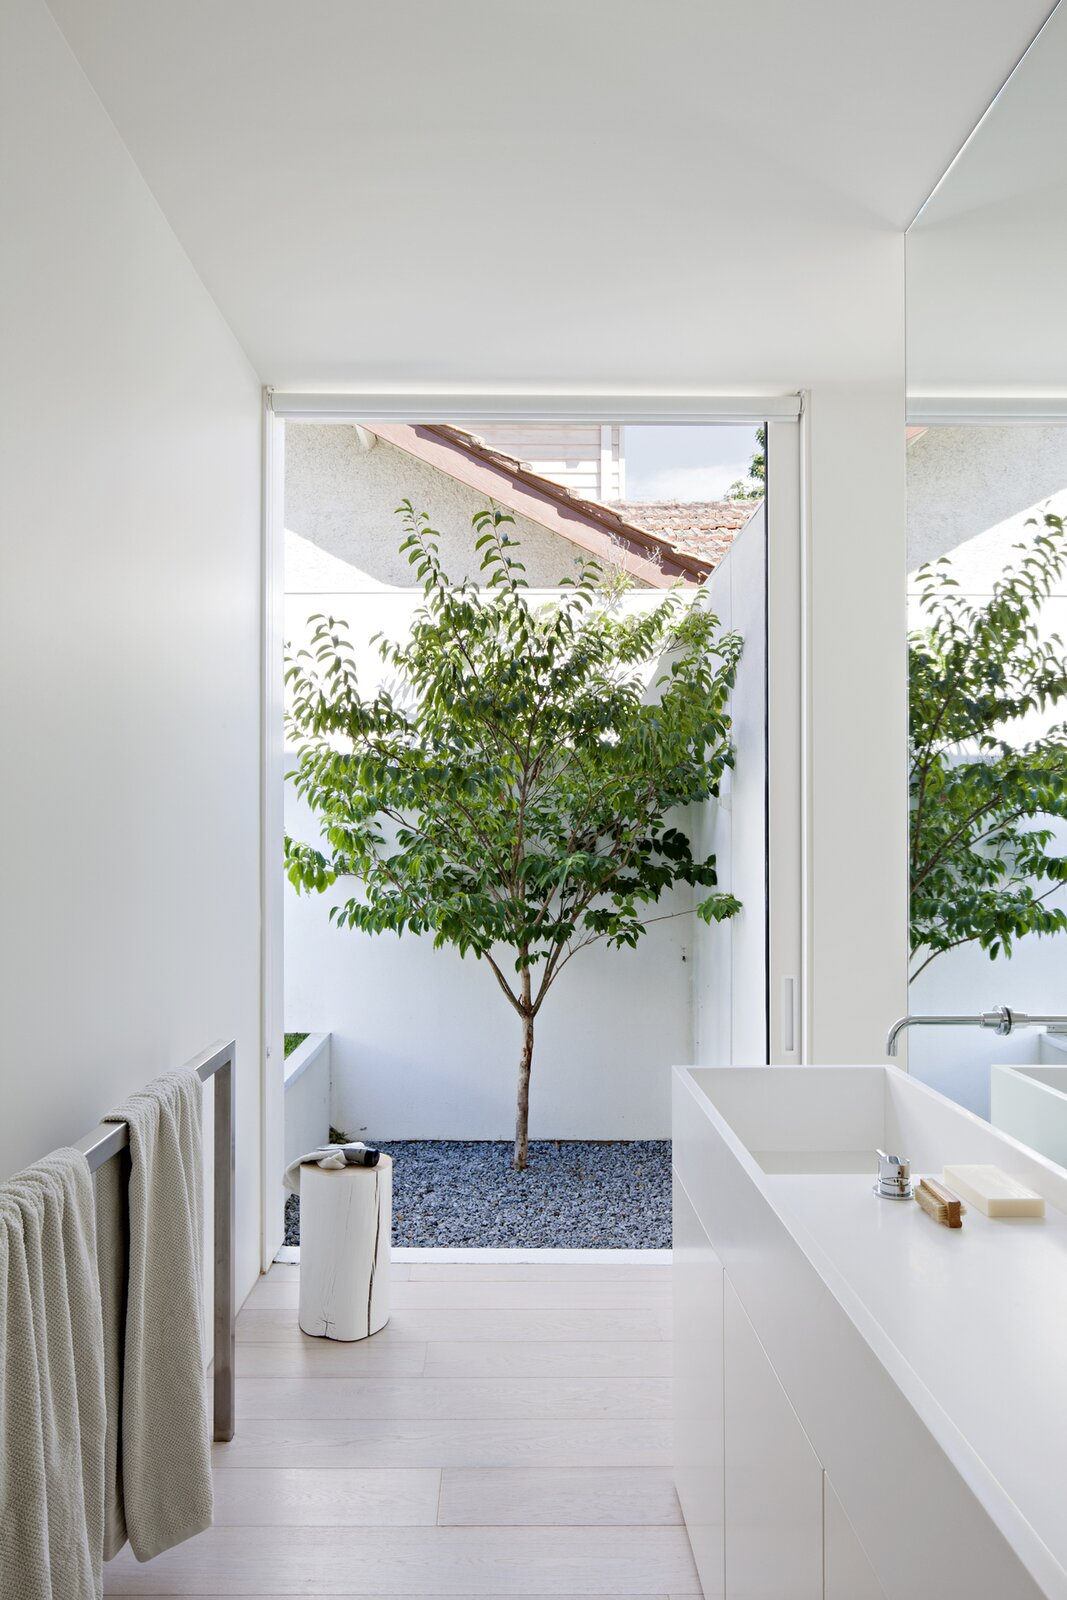 Bath Room, Ceiling Lighting, and Light Hardwood Floor  Photo 3 of 6 in An Introspective Home in Melbourne Offers Garden Views at Every Turn